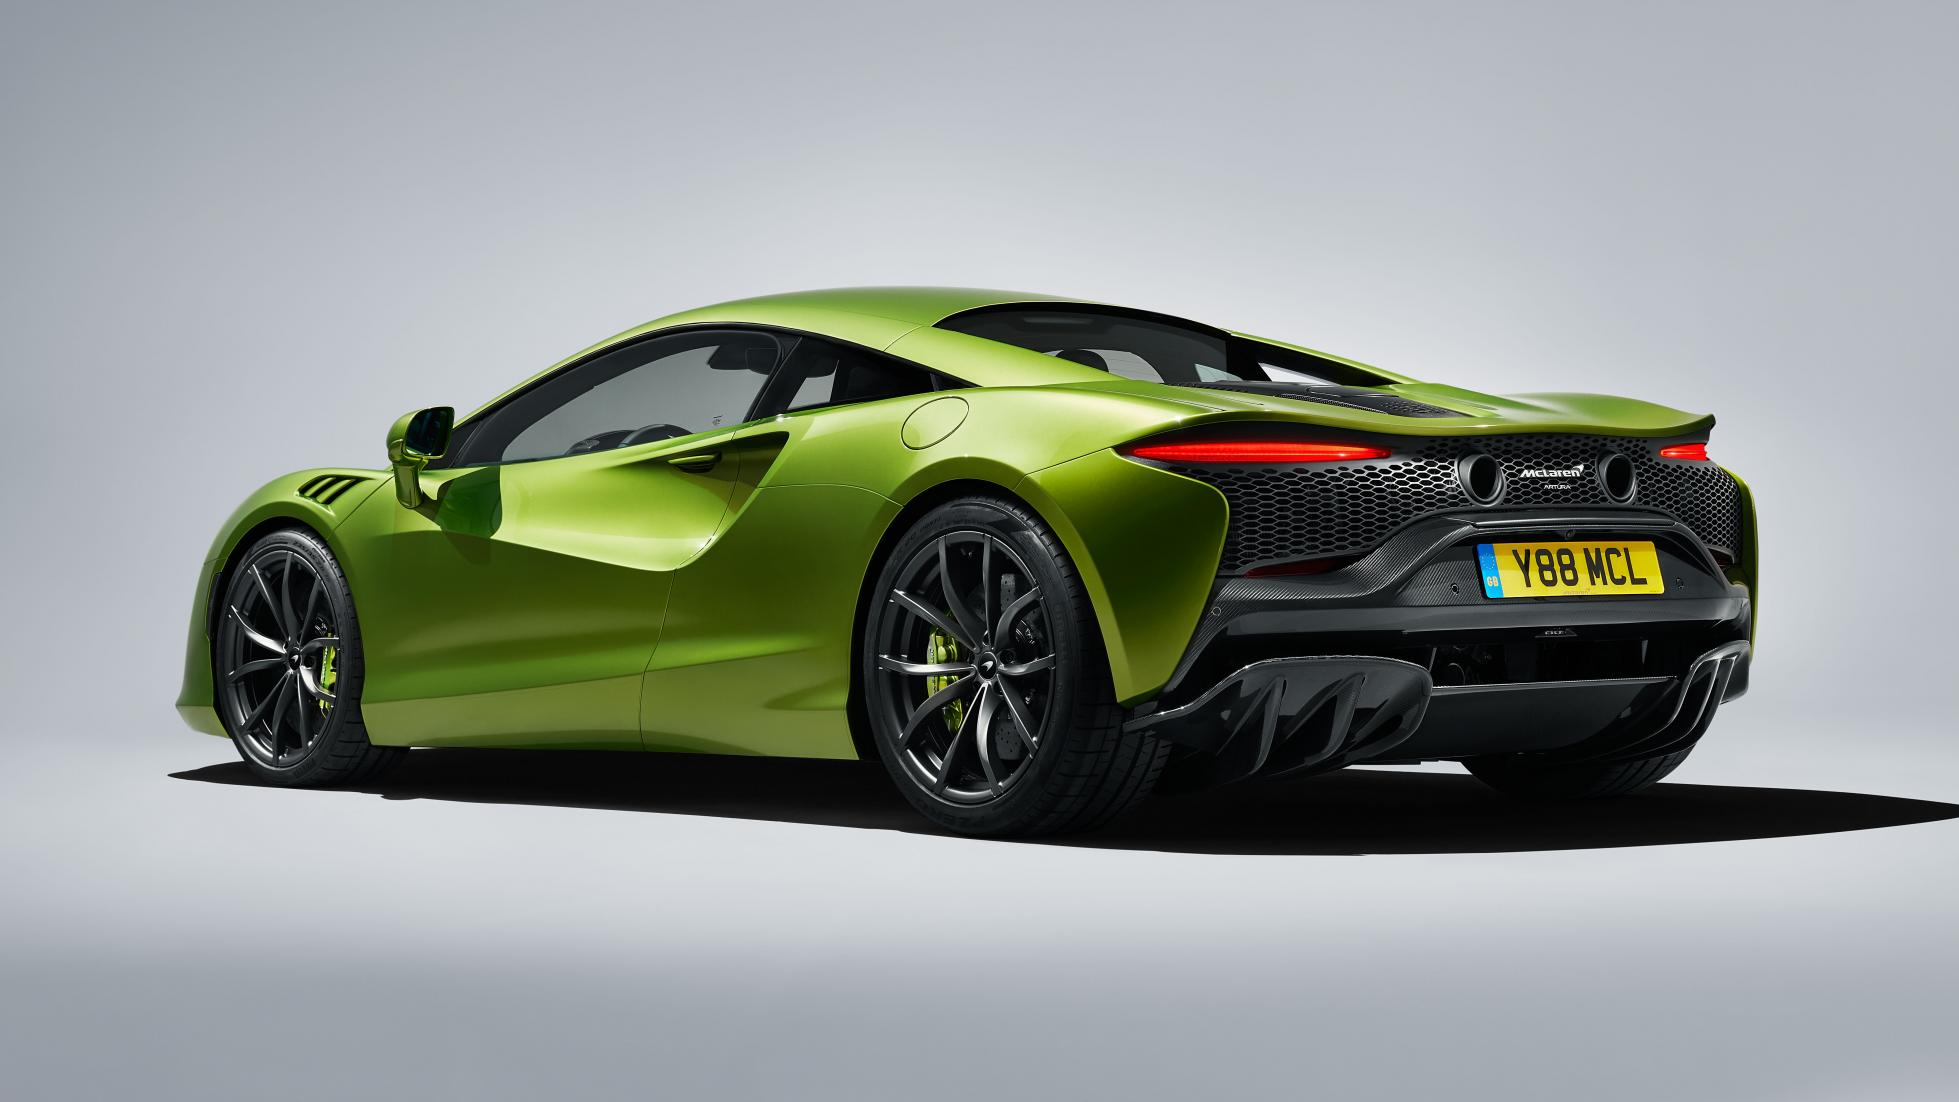 McLaren Artura in Flux Green angled view